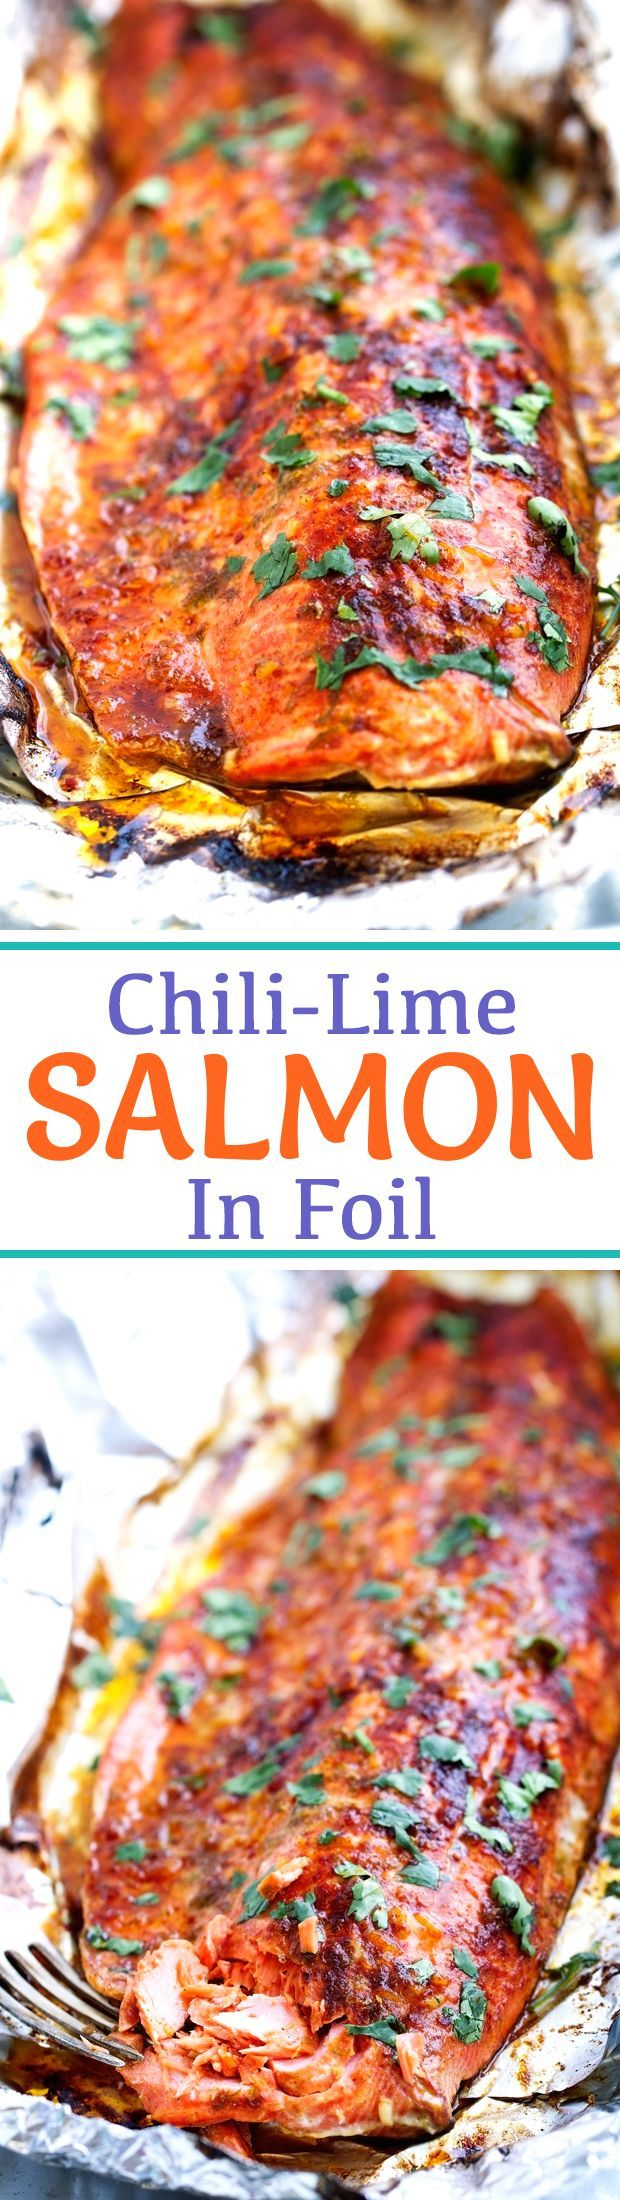 Chili-Lime Baked Salmon in Foil - This recipe takes less than 30 minutes and is perfect! http://Littlespicejar.com